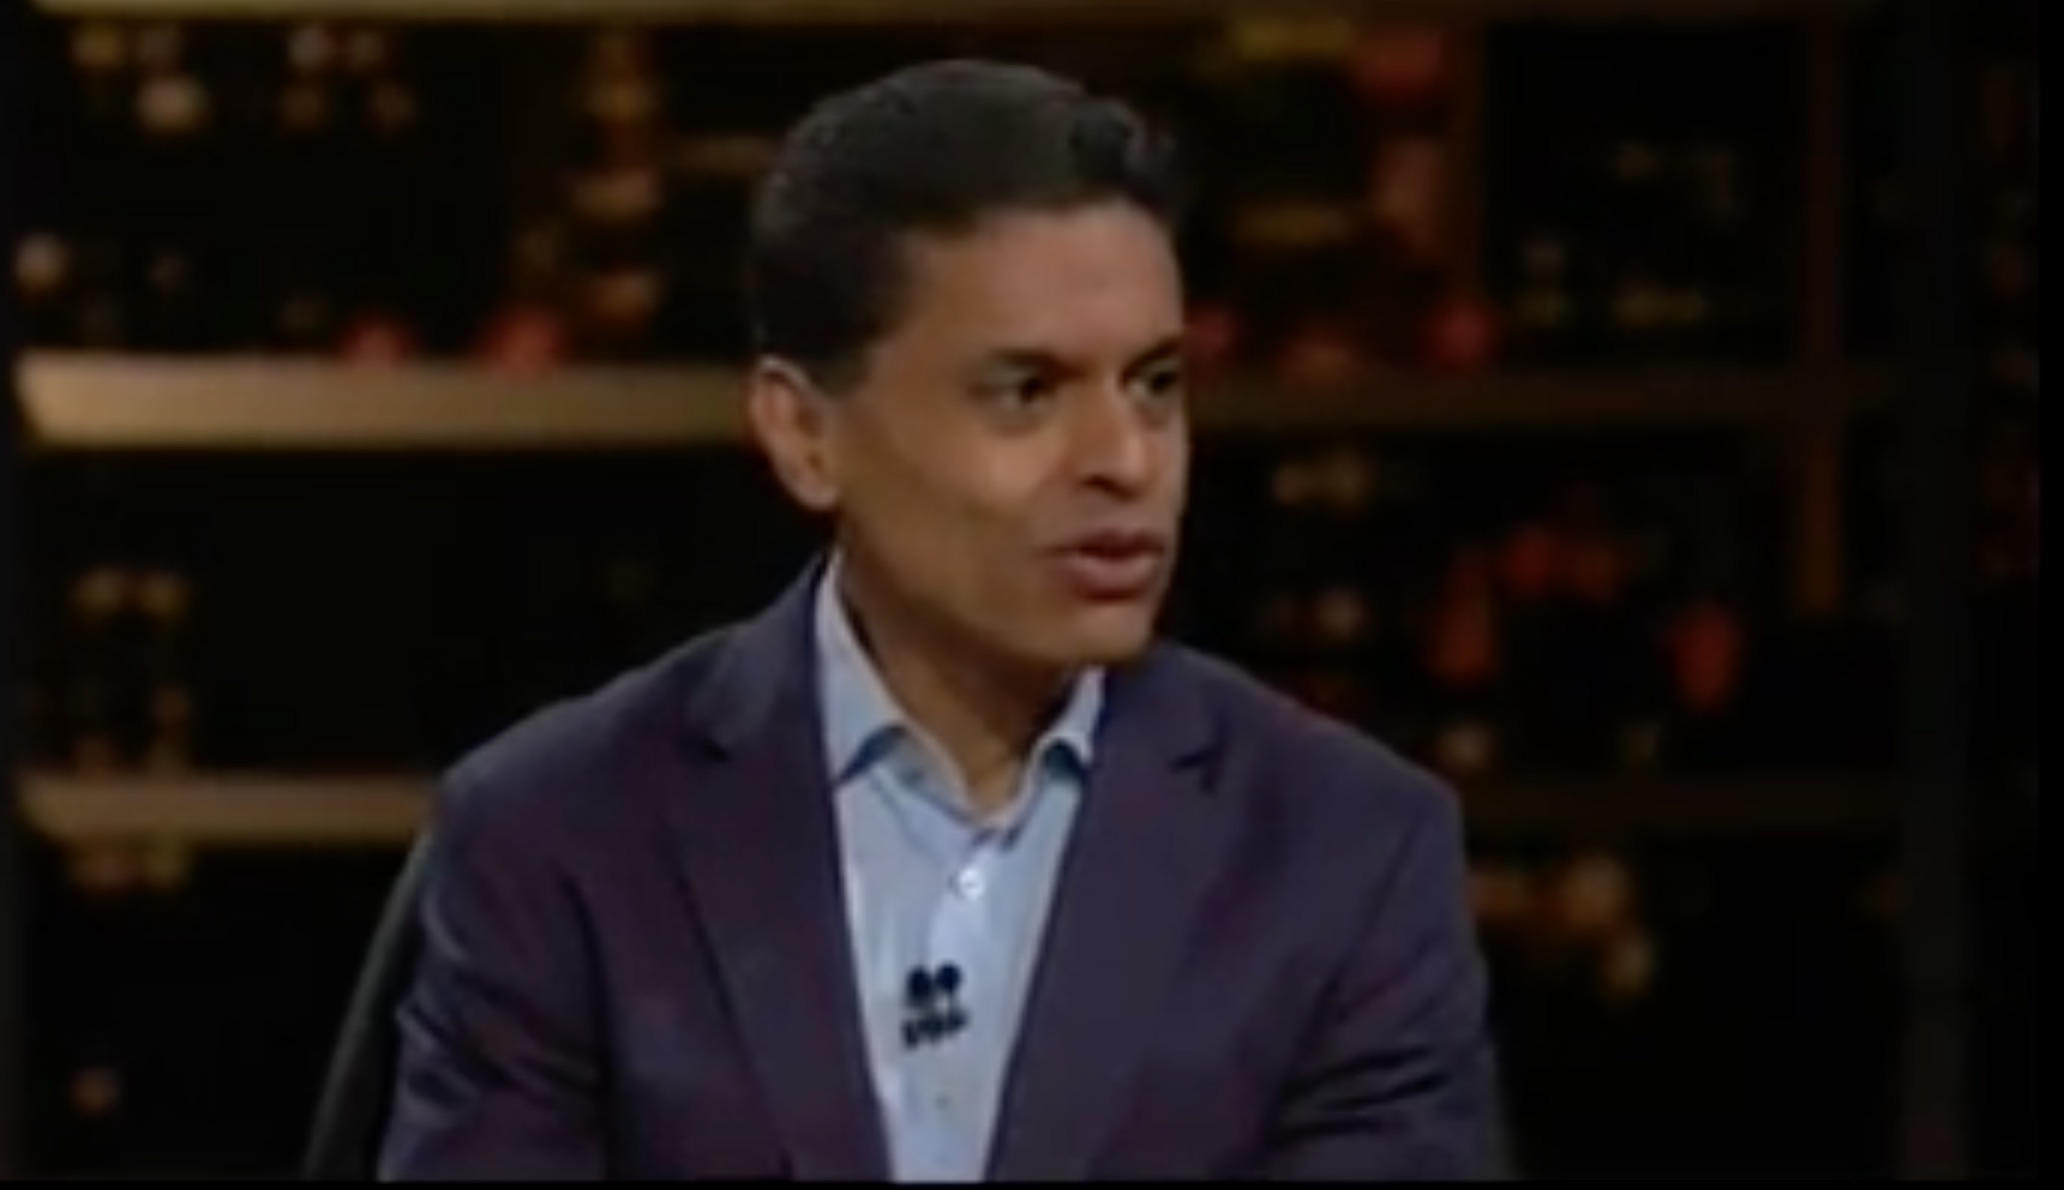 Fareed Zakaria: If Trump Gets North Korea to Denuclearize, 'I Would Give Him the Nobel Prize'